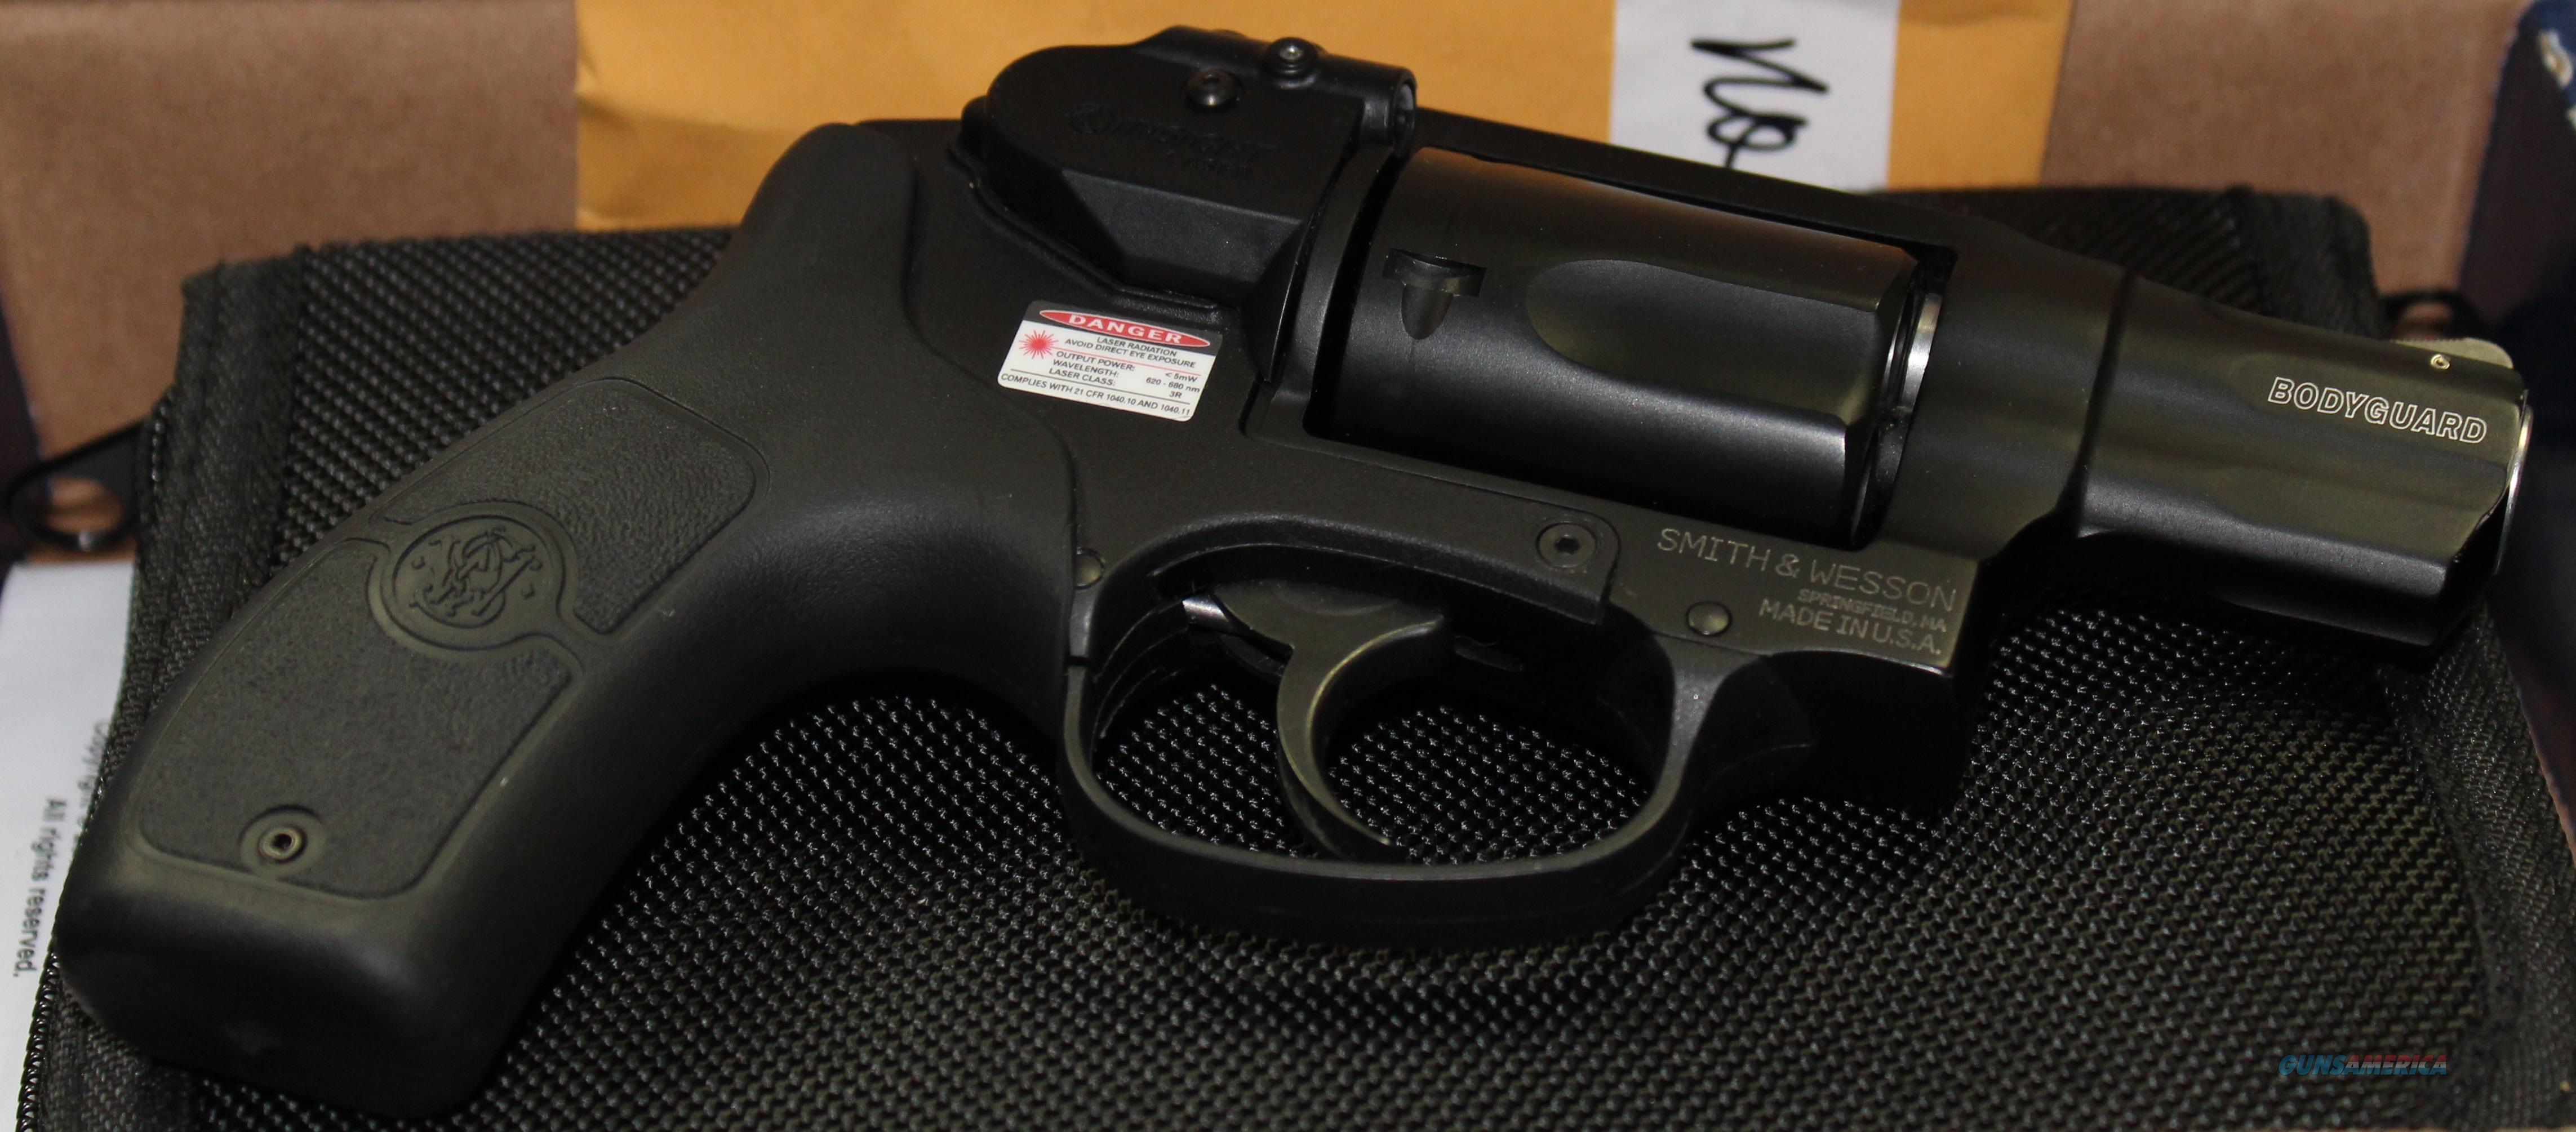 "SMITH & WESSON BODYGUARD 38 SPL 1.875"" REVOLVER WITH LASER  Guns > Pistols > Smith & Wesson Revolvers > Pocket Pistols"